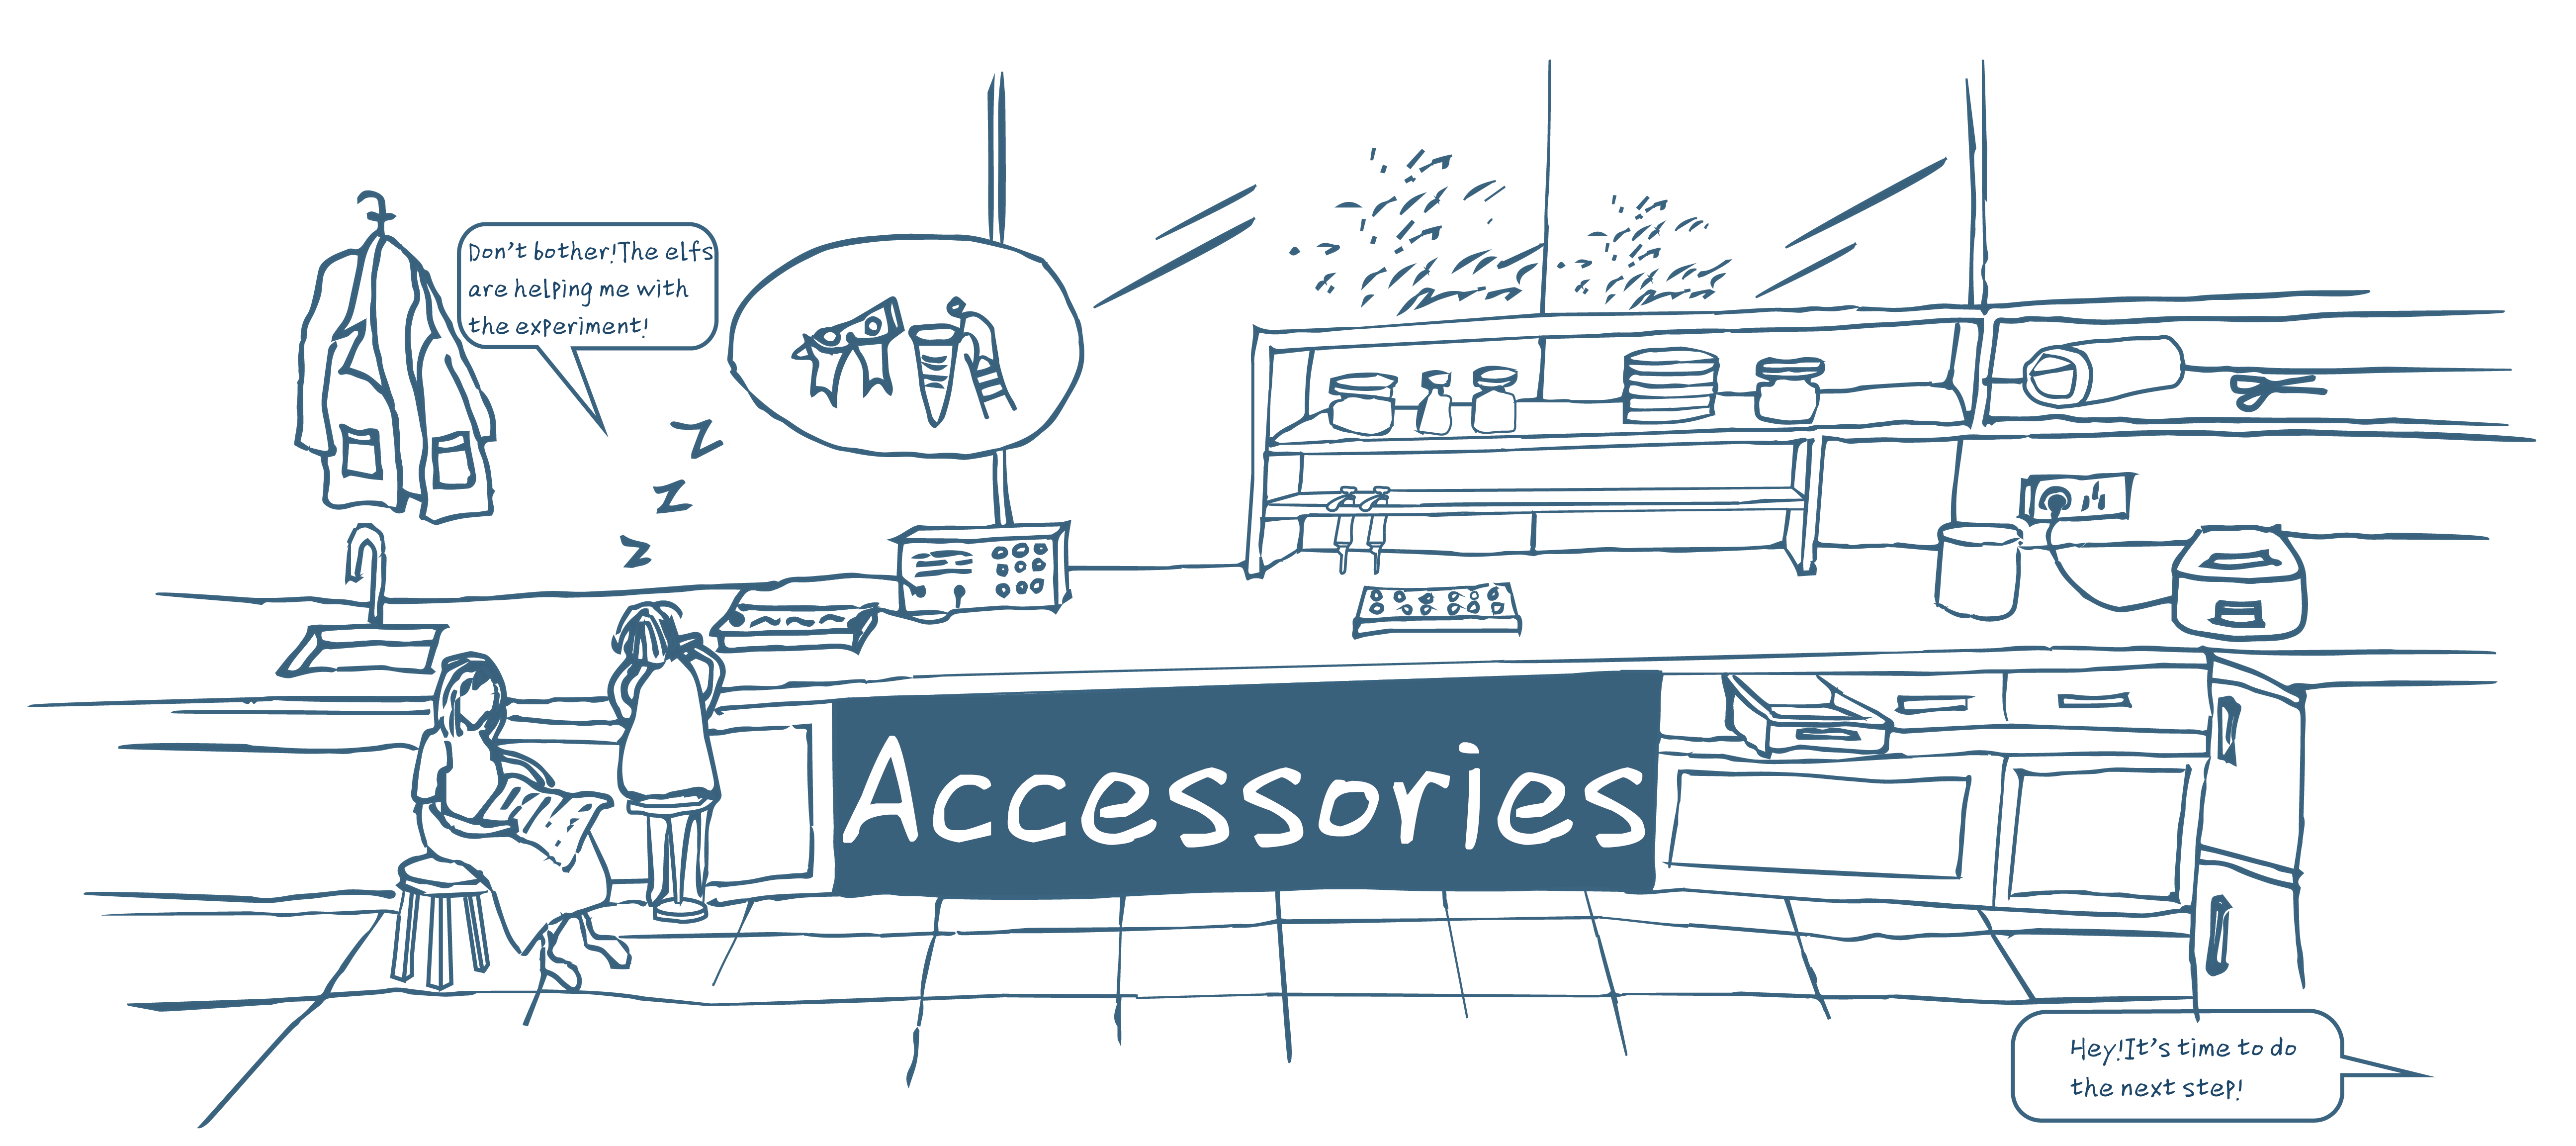 Drawing accessory technical. Team xmu china accessories